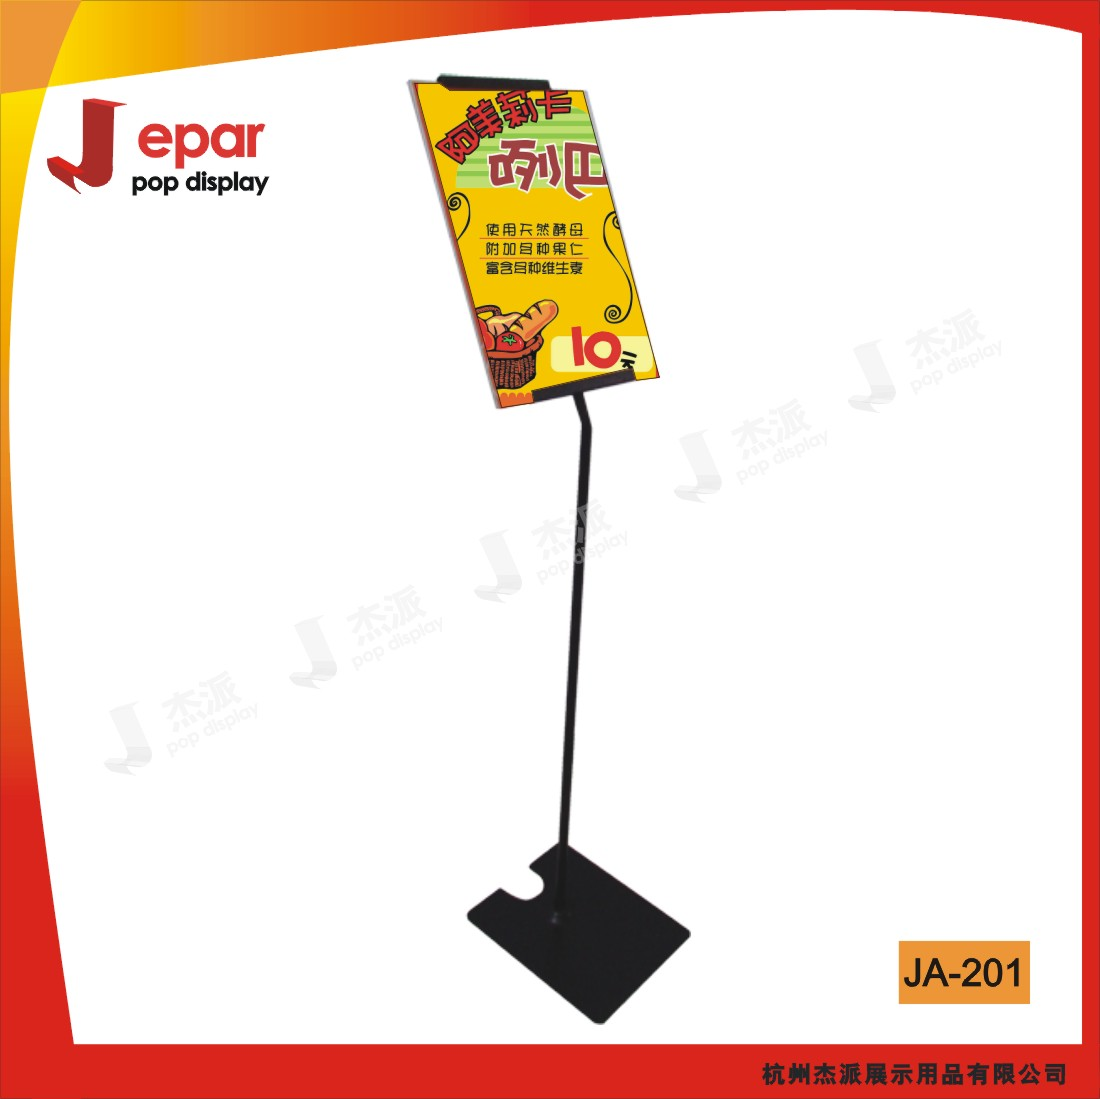 Powder coated metal adjustable a3 floor poster display stand